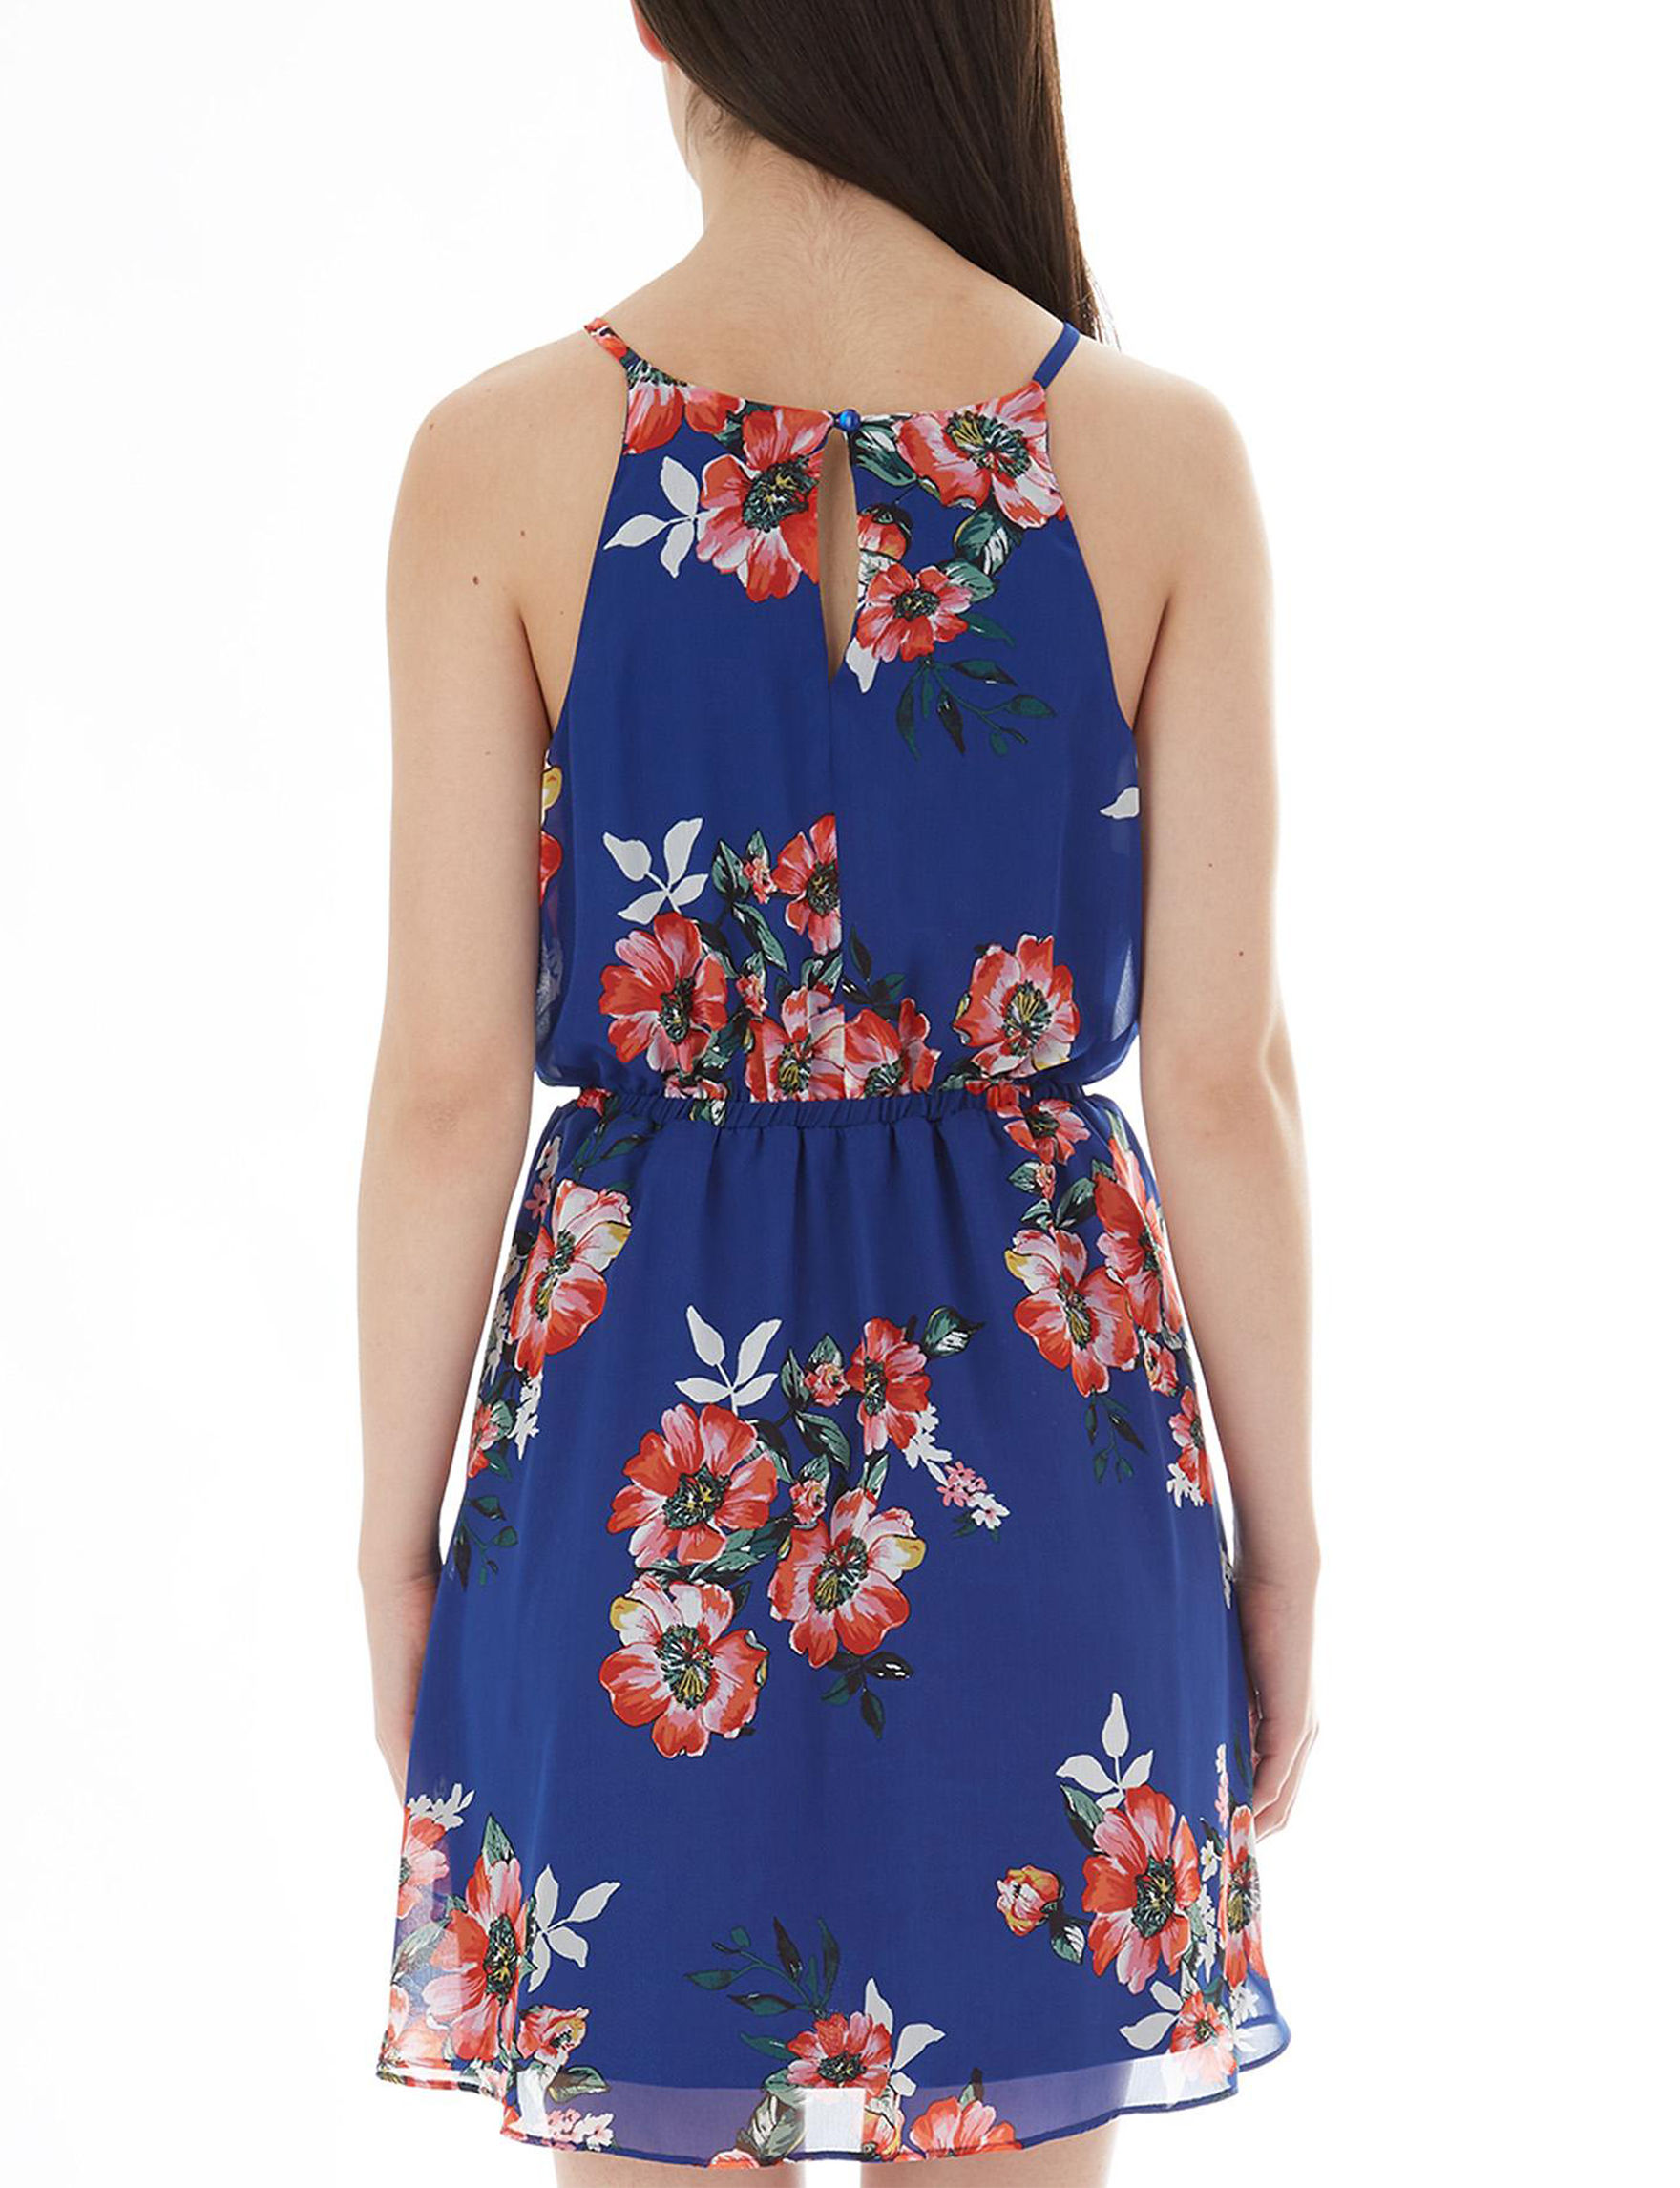 A. Byer Blue Everyday & Casual Fit & Flare Dresses Halter